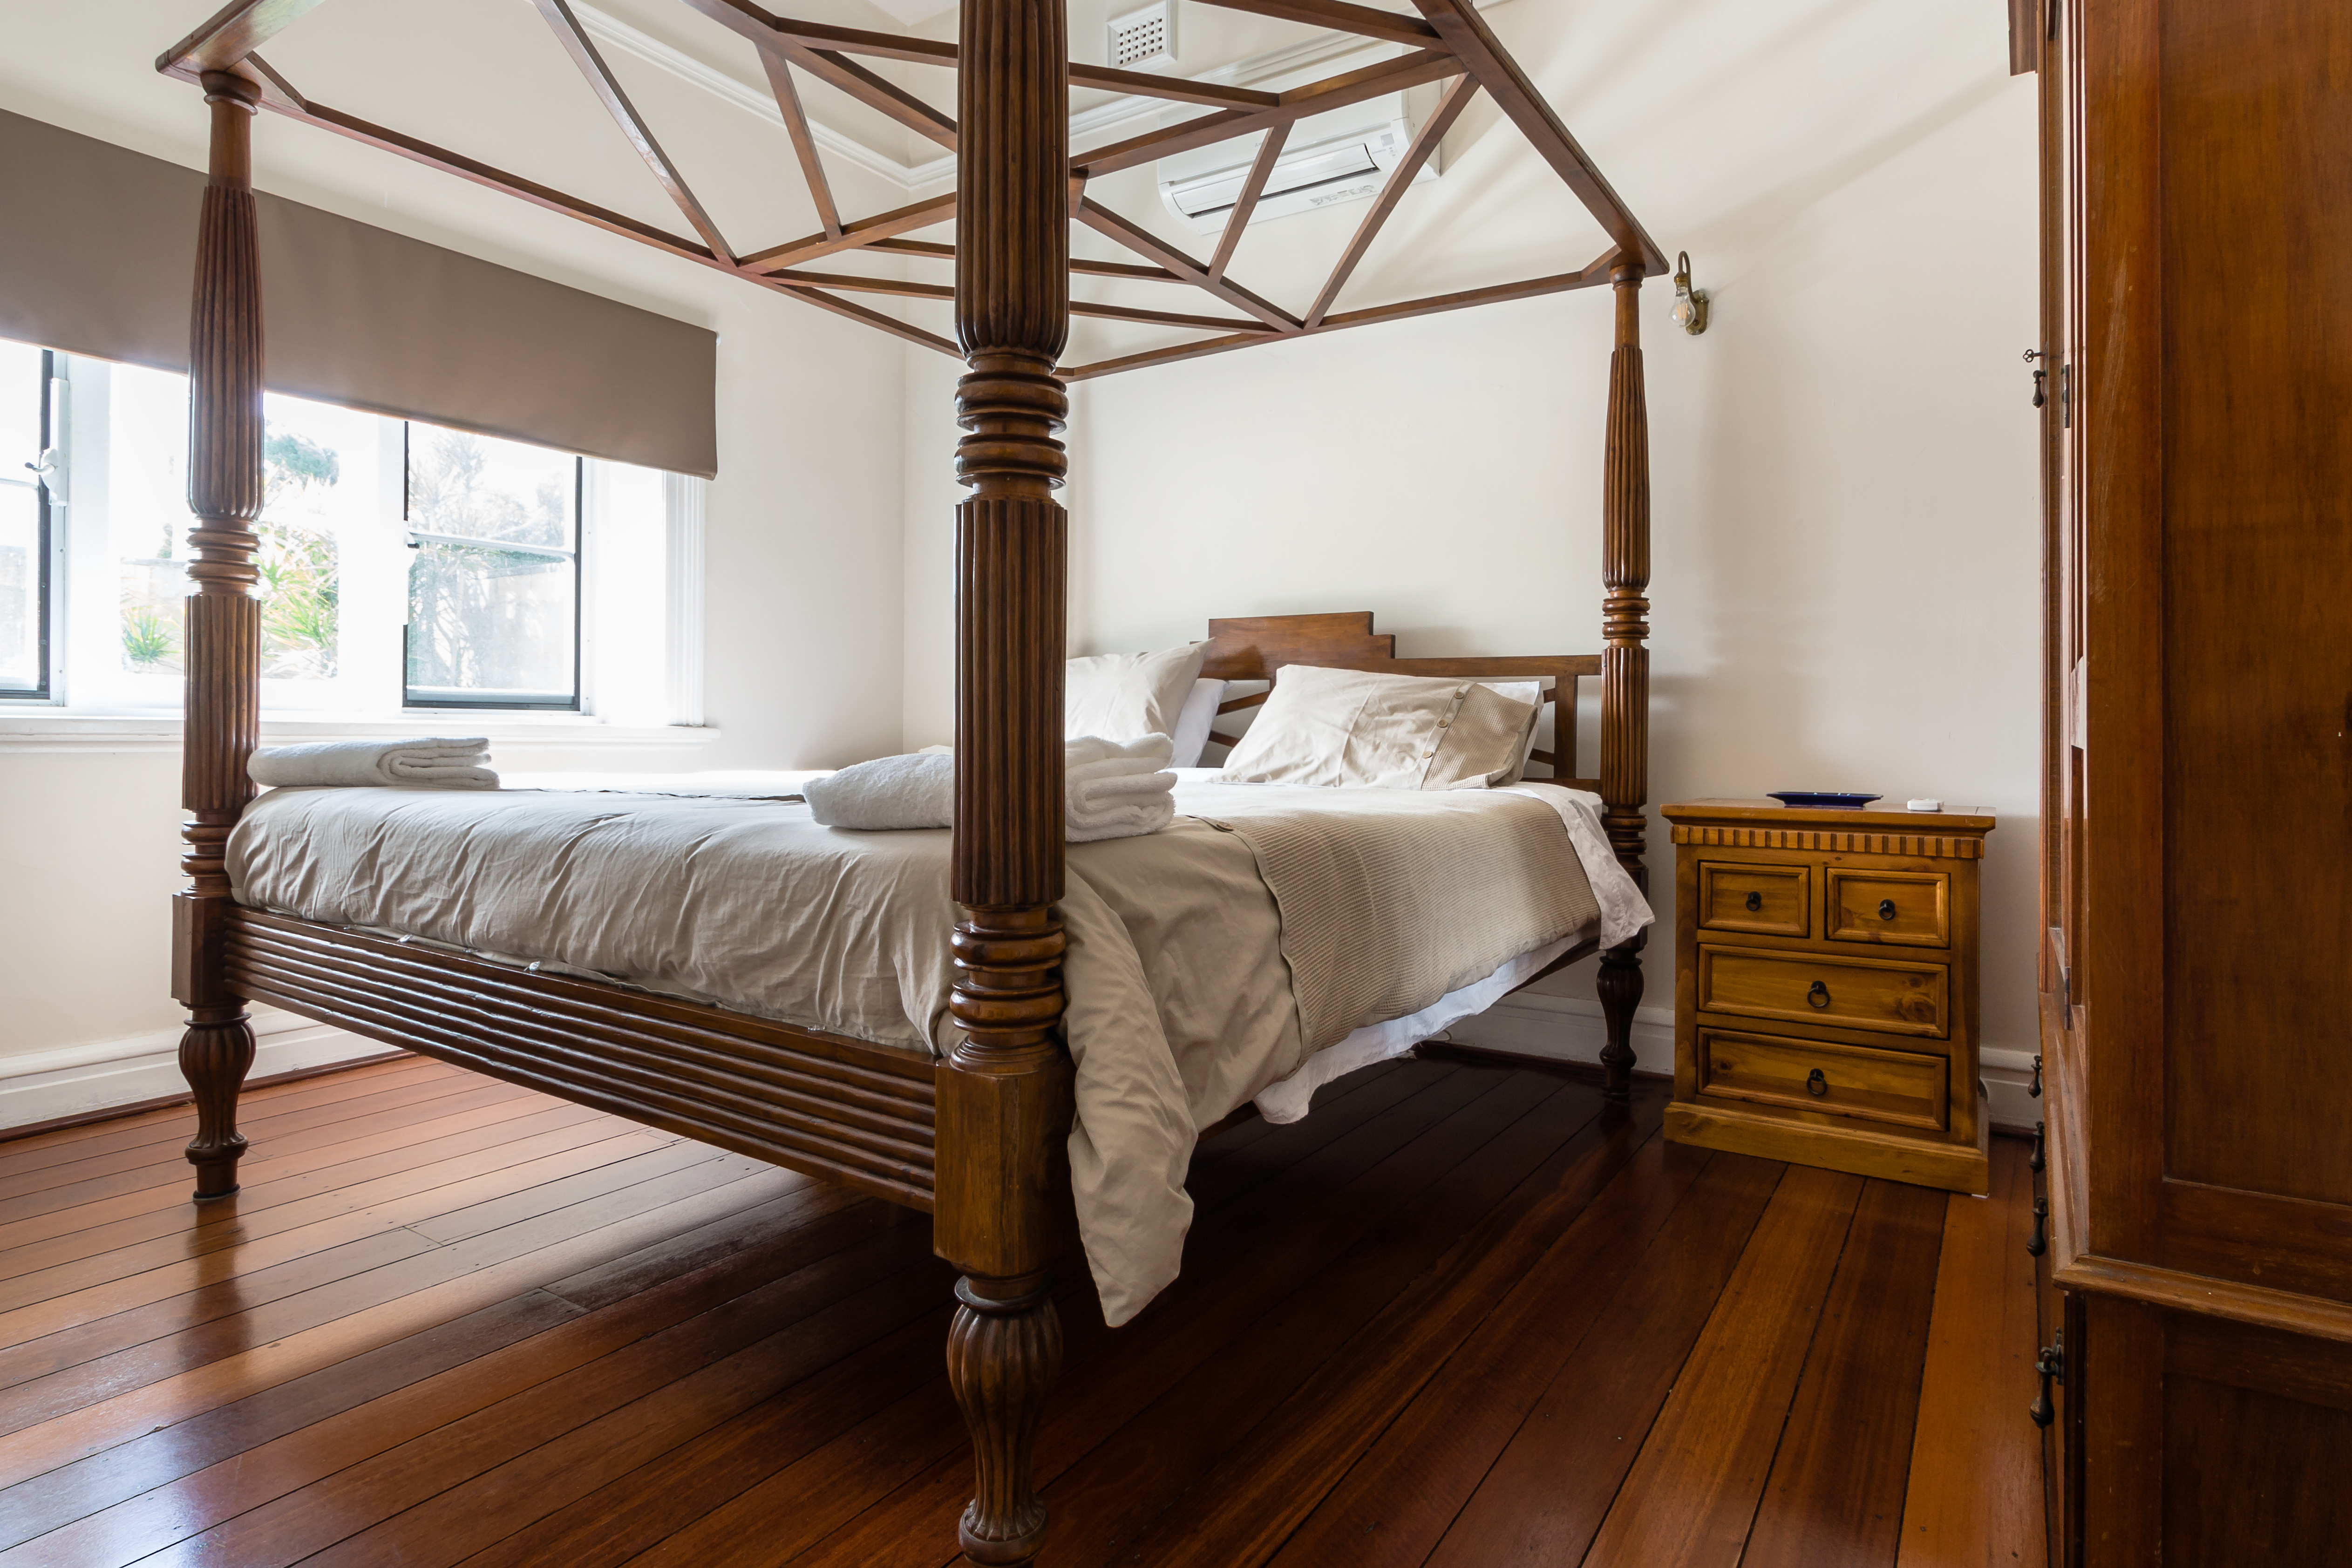 Picture of: North Perth Character Comfort Houses For Rent In North Perth Western Australia Australia